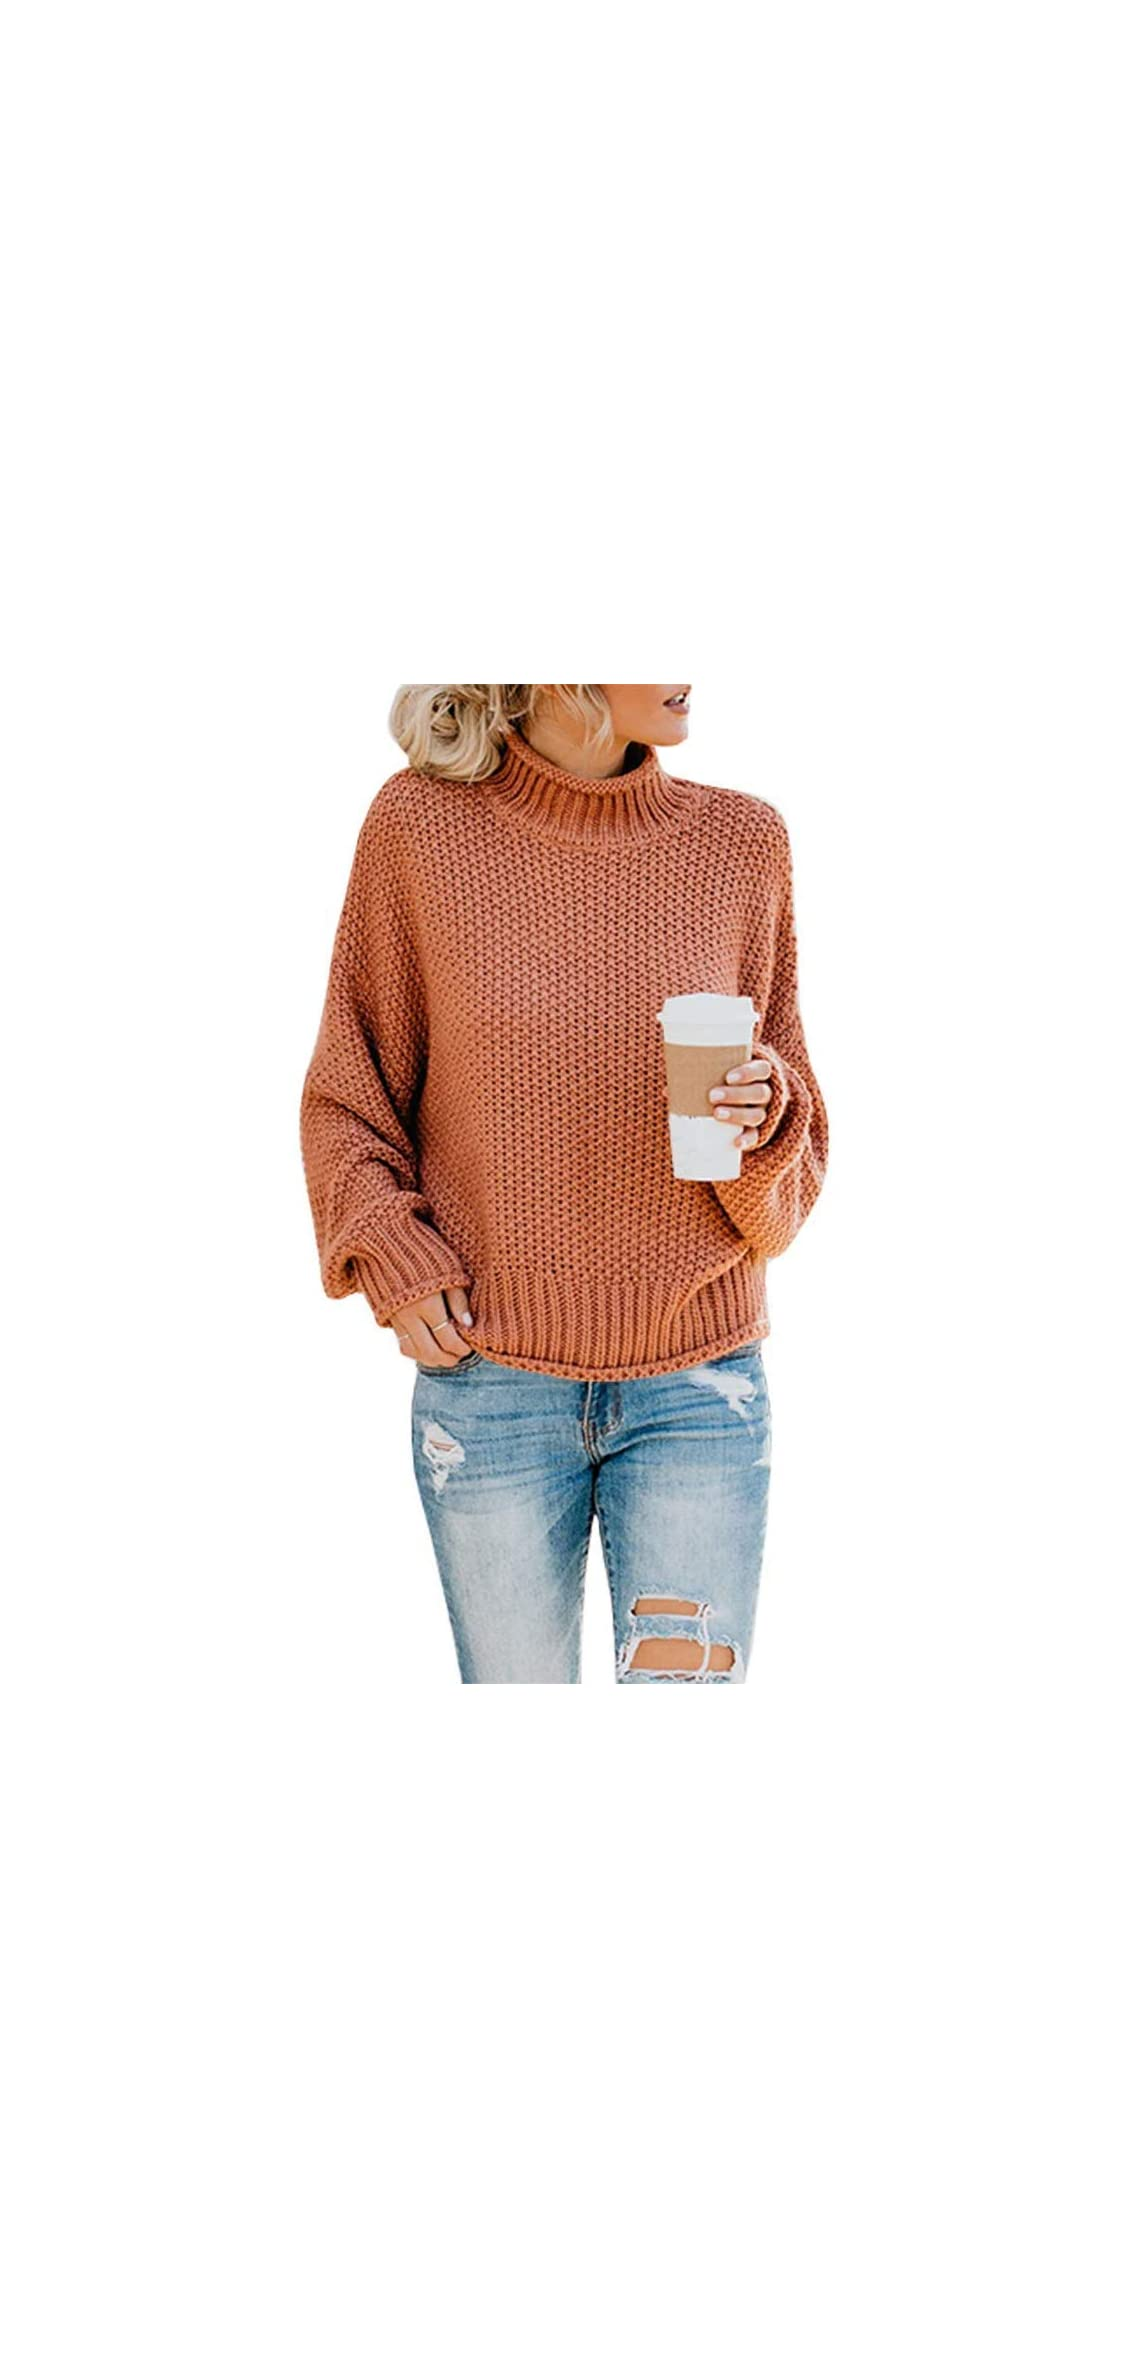 Womens Oversized Turtlenecks Sweaters Batwing Long Sleeve